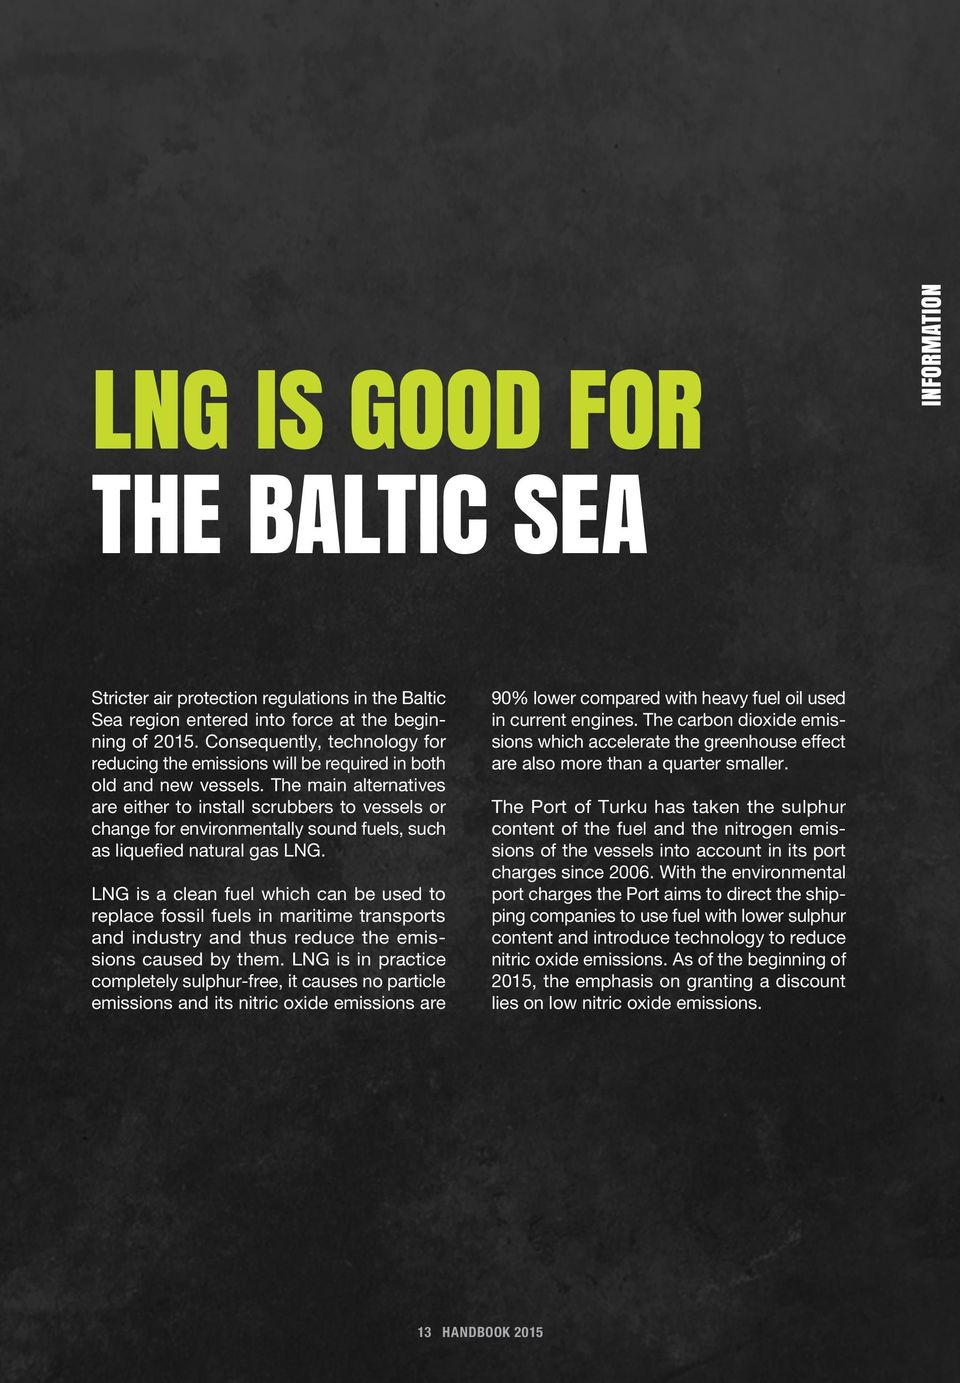 The main alternatives are either to install scrubbers to vessels or change for environmentally sound fuels, such as liquefied natural gas LNG.